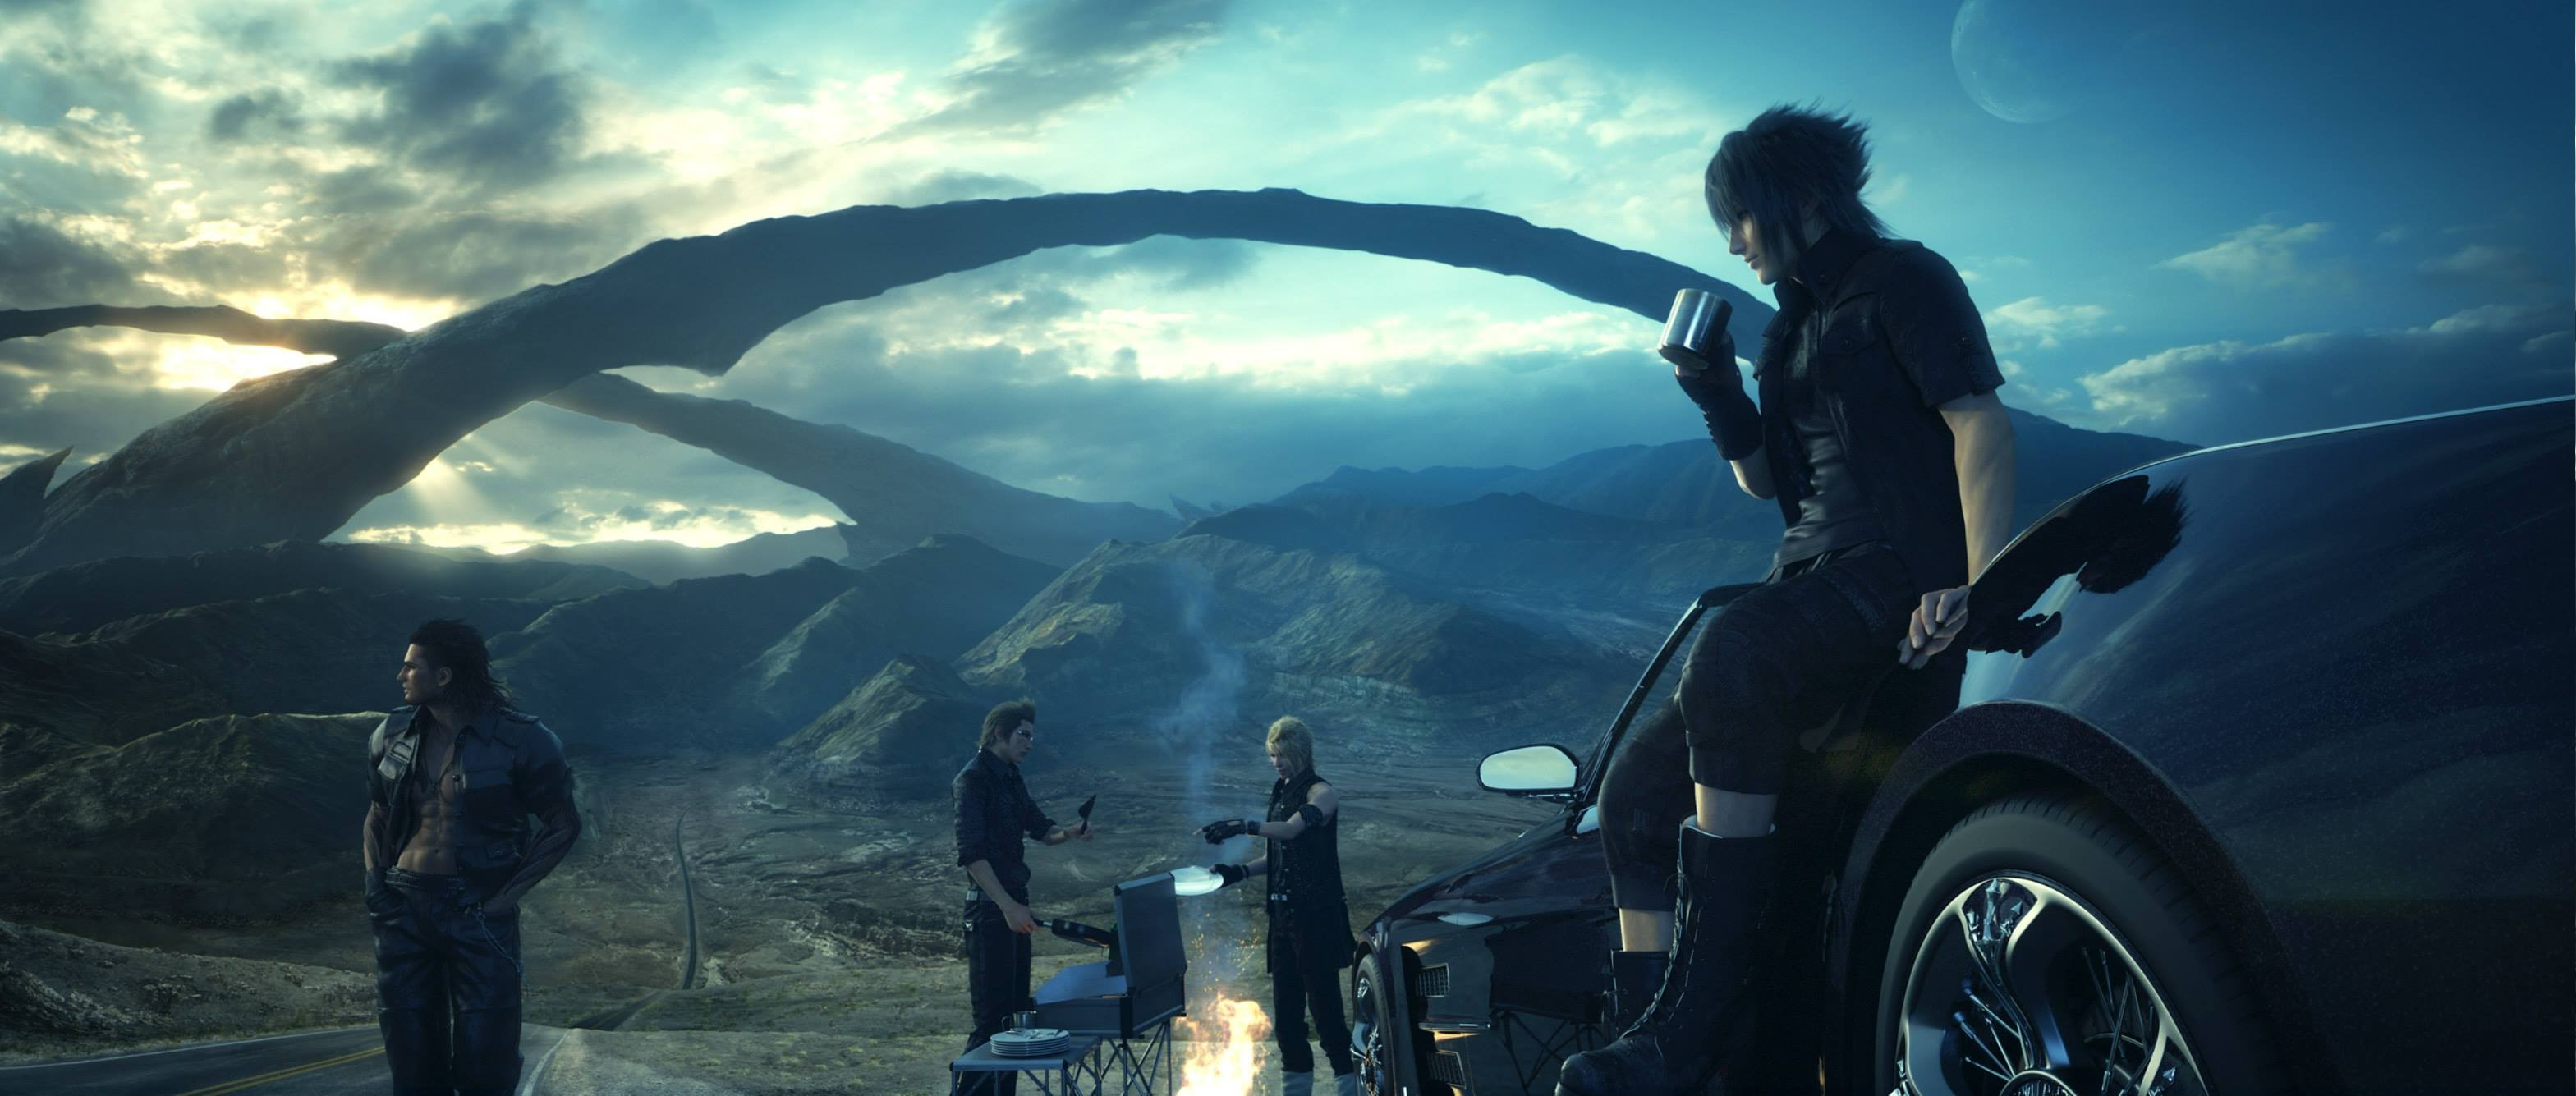 Ff7 Wallpaper Hd Final Fantasy Final Fantasy Versus Xiii Anime Noctis